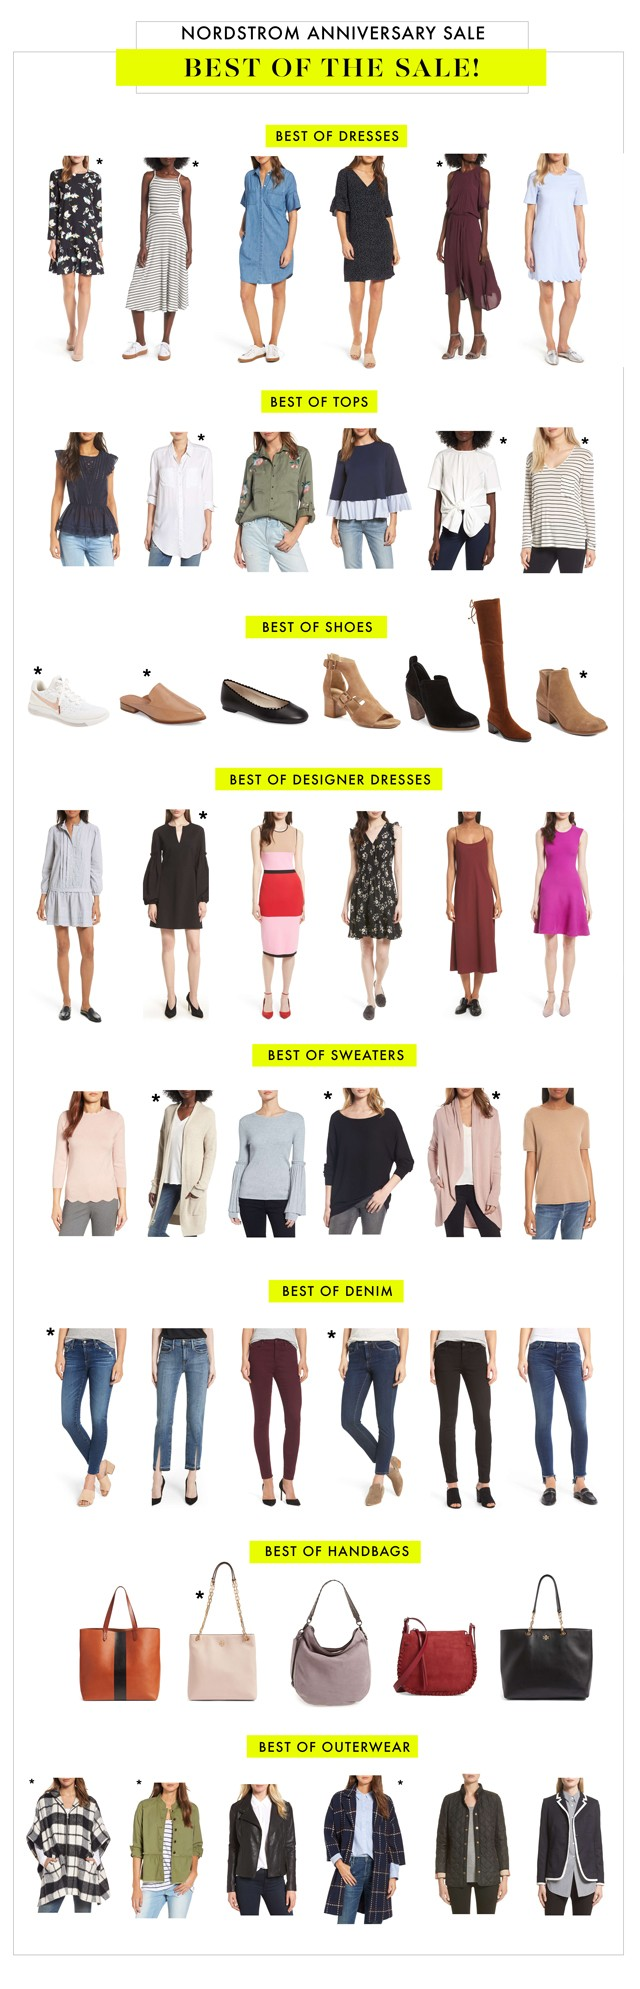 dc4abf01485f Best of the Nordstrom Anniversary Sale -- Early Access! | Kendi Everyday